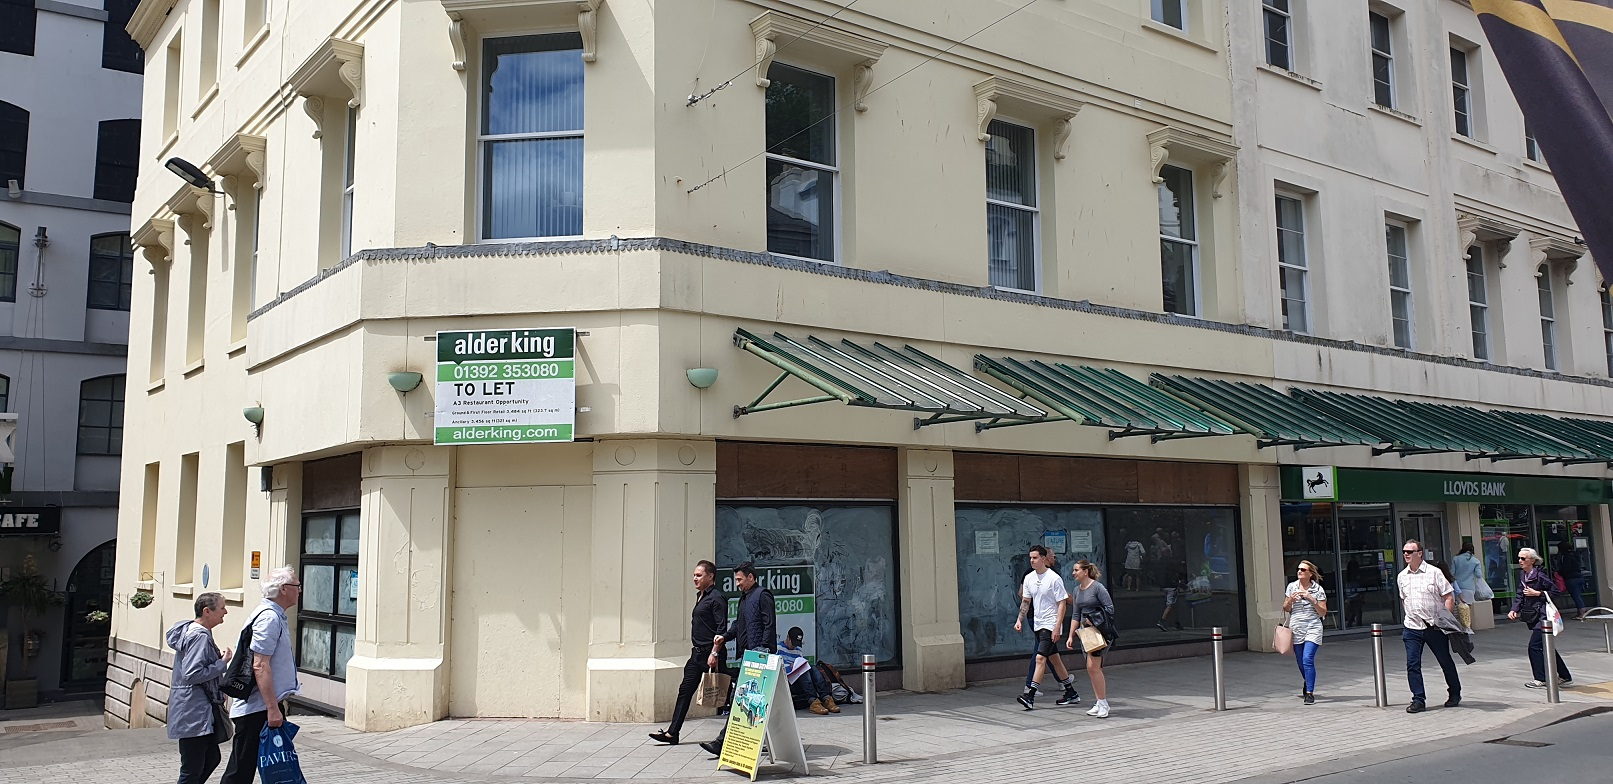 0 bed Restaurant - A3 for rent in Torquay. From Azure Property Consultants